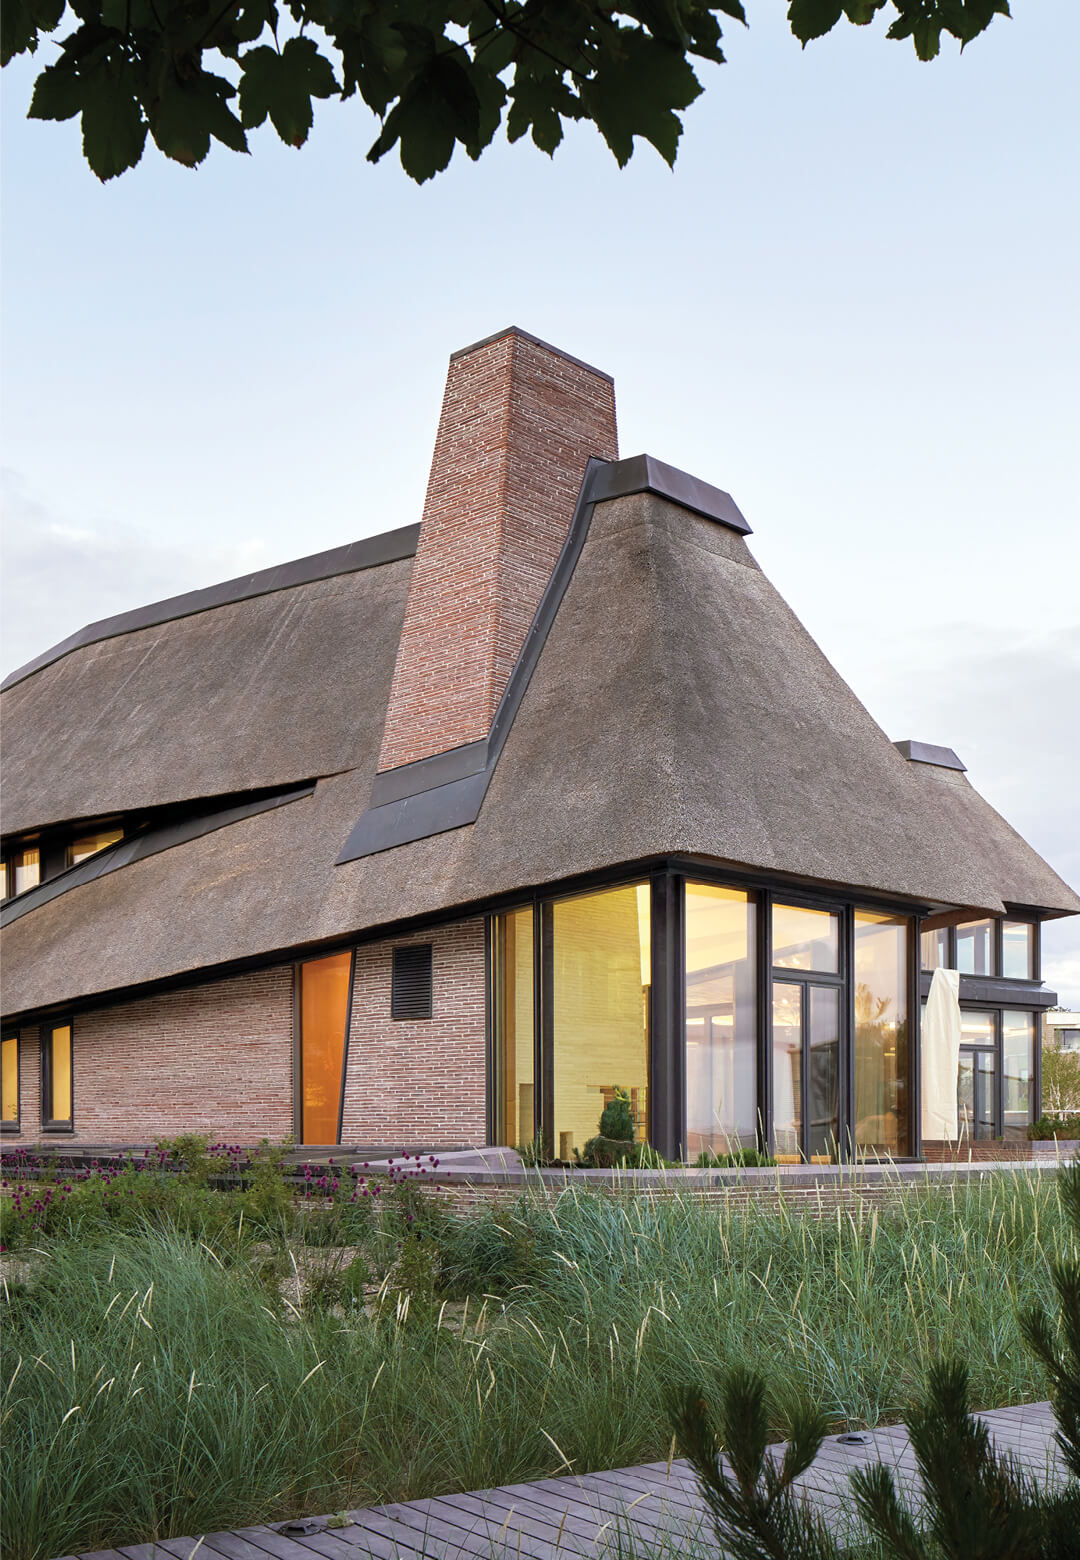 House on a North Sea Island by Hubschmitz Arkitekten in Wyk auf Föhr, Germany | STIRworld